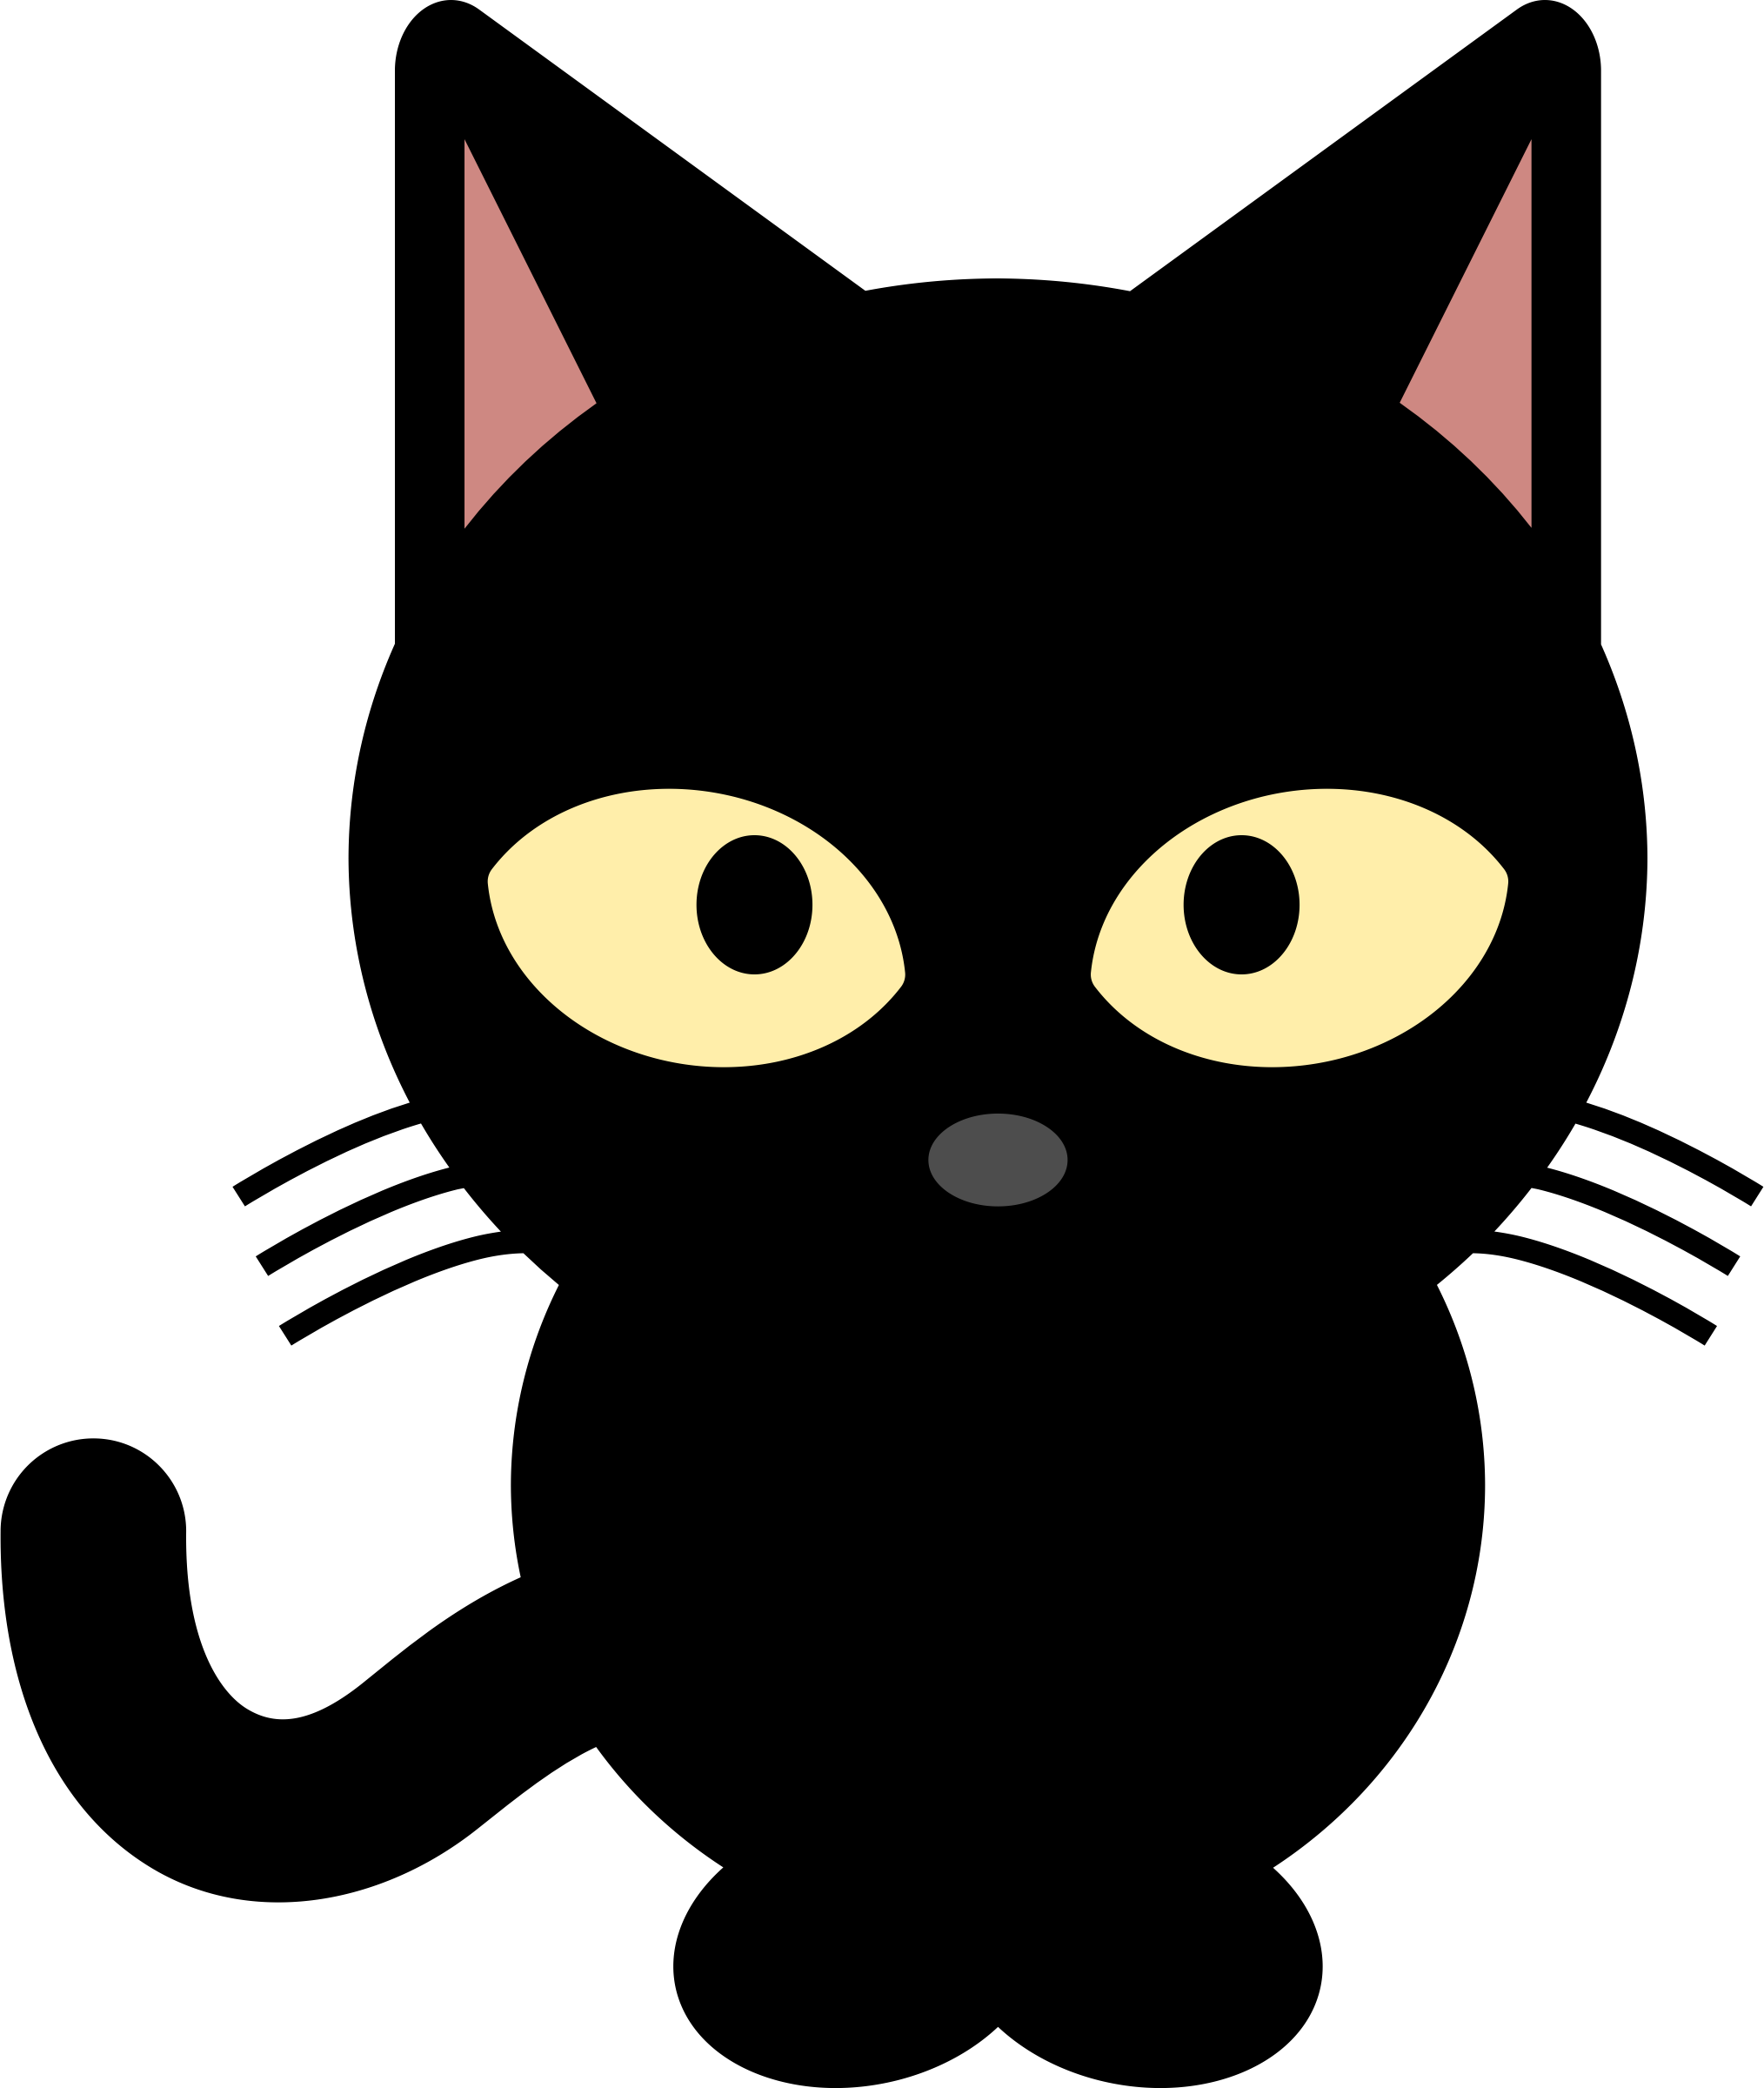 Cat clip art transparent background. Image id png photo